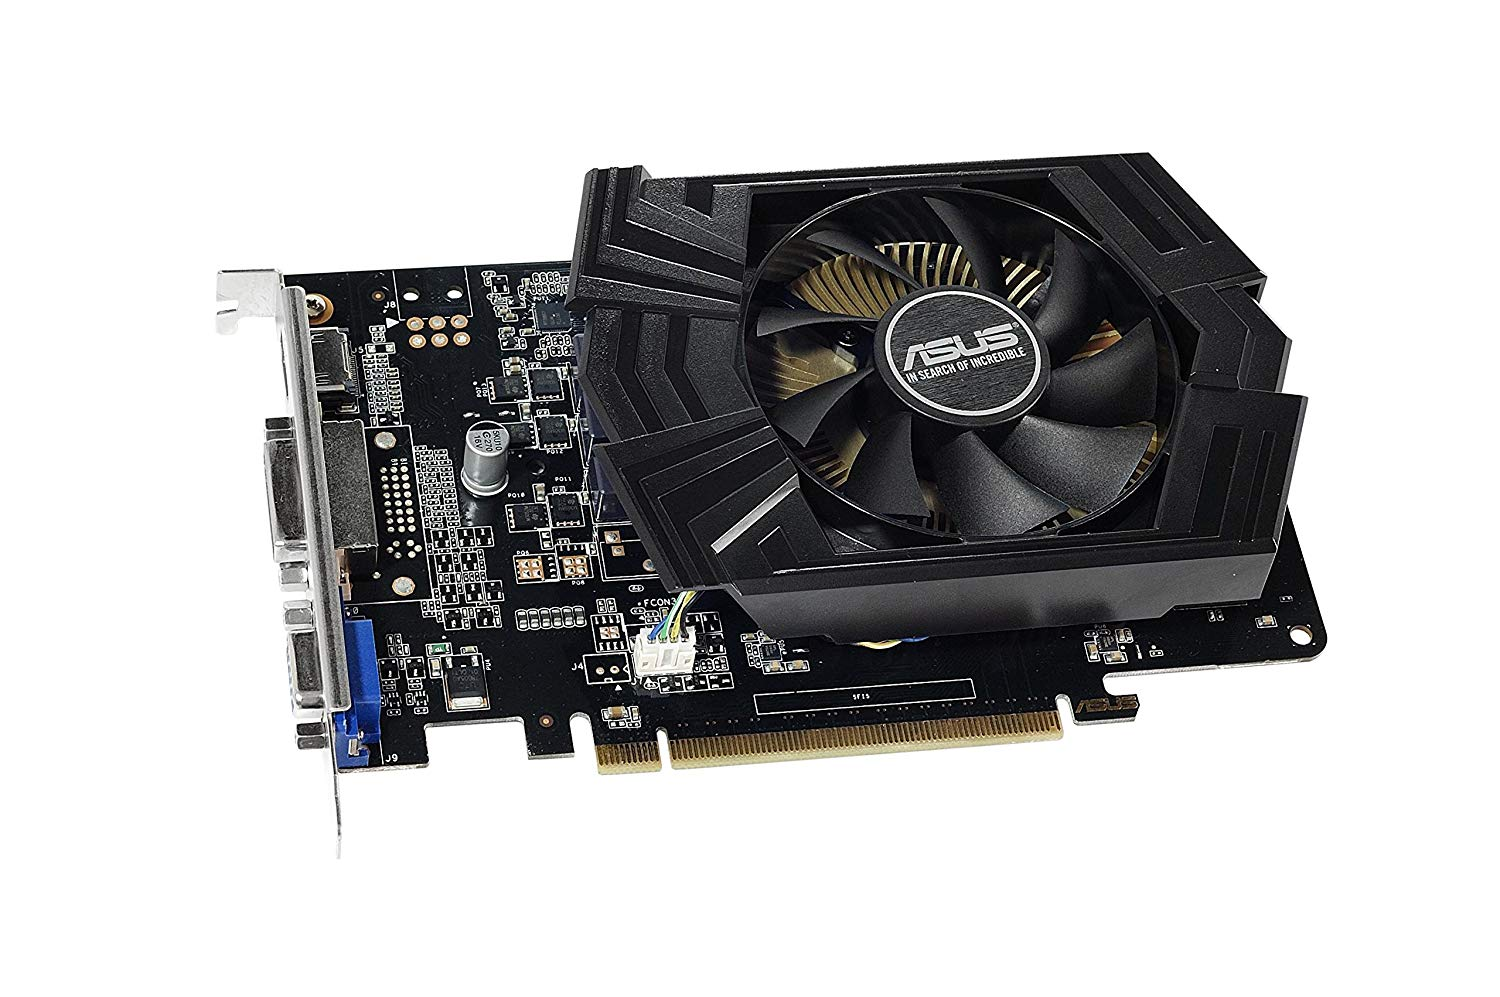 Asus Nvidia GeForce GTX 750 Graphics Card (1GB, GDDR5, PCI-Expre